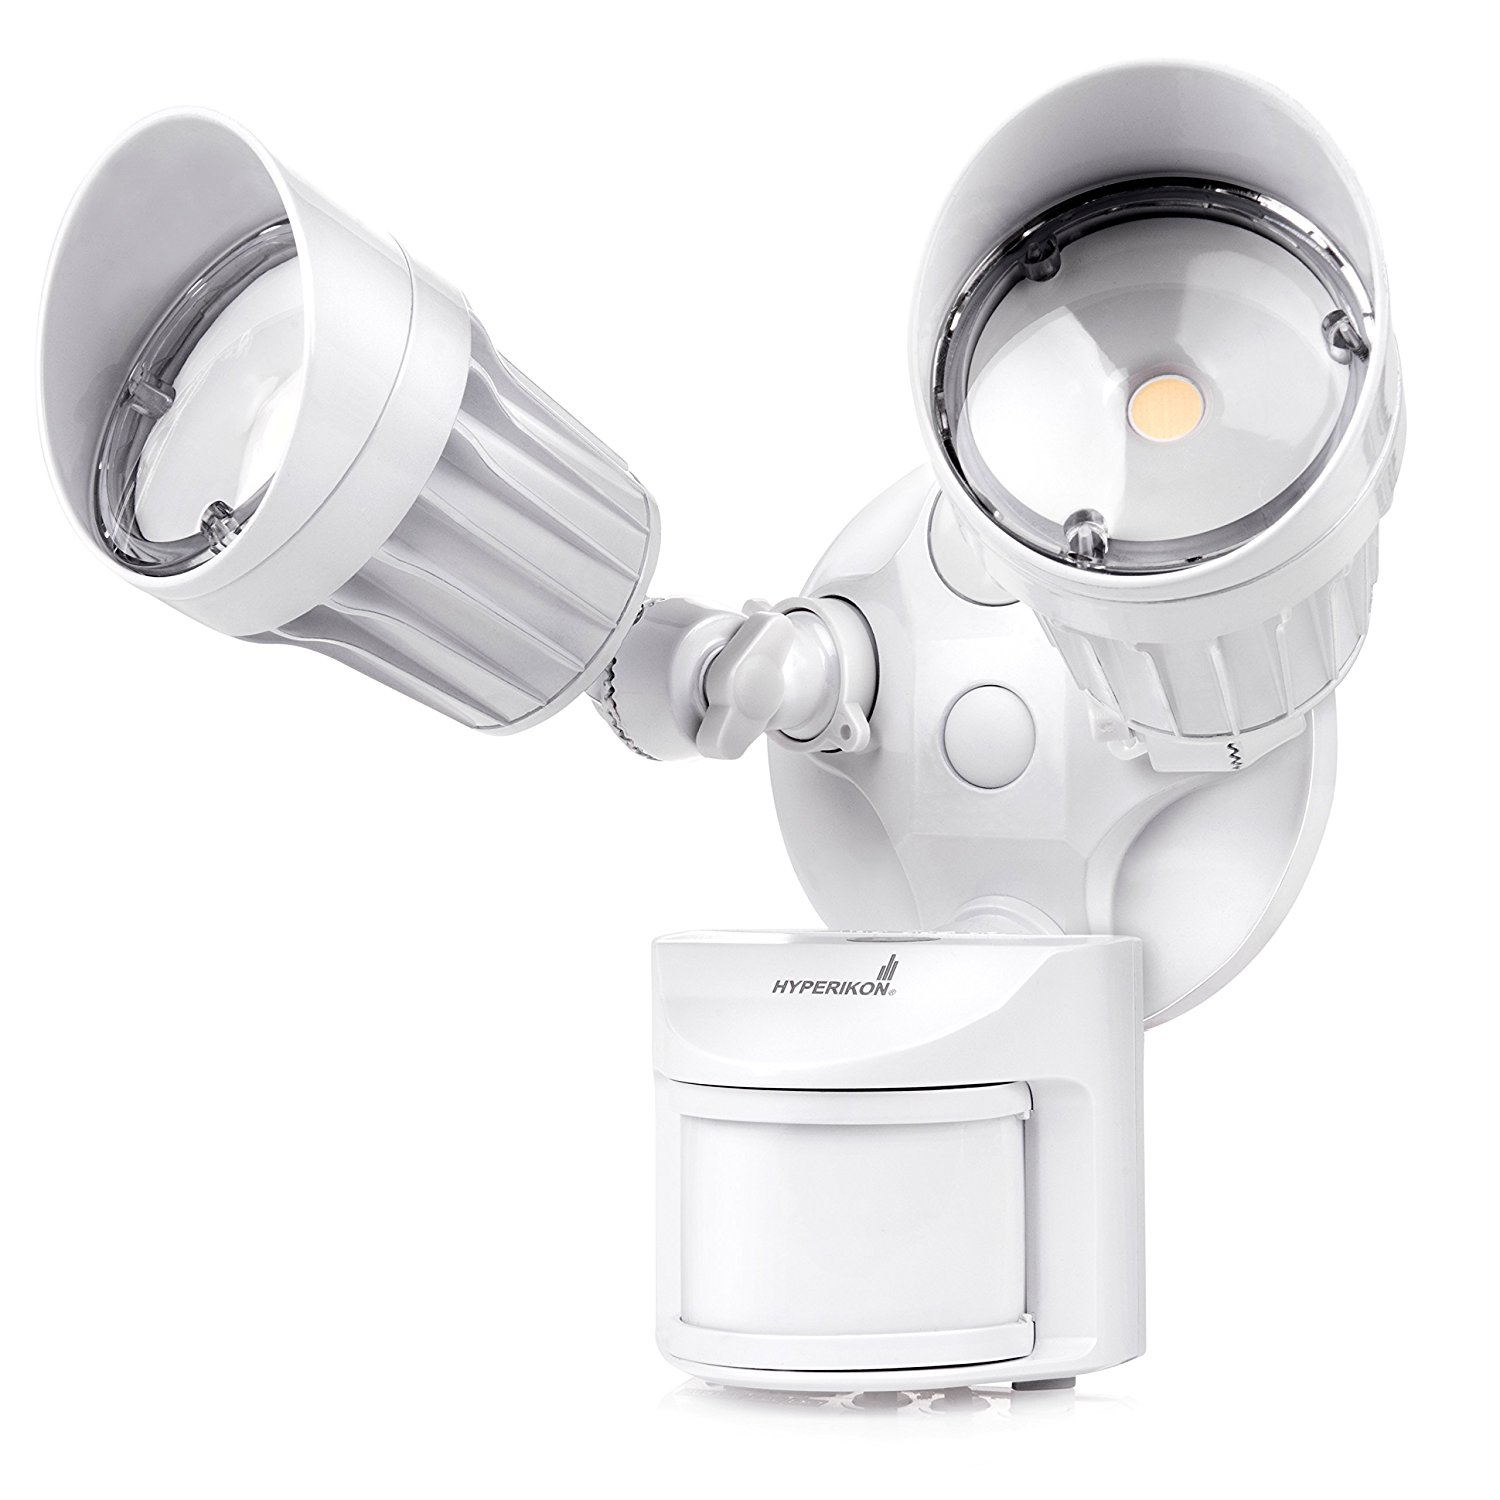 Outdoor home security lights to deter thieves outdoor home security lights motion sensor mozeypictures